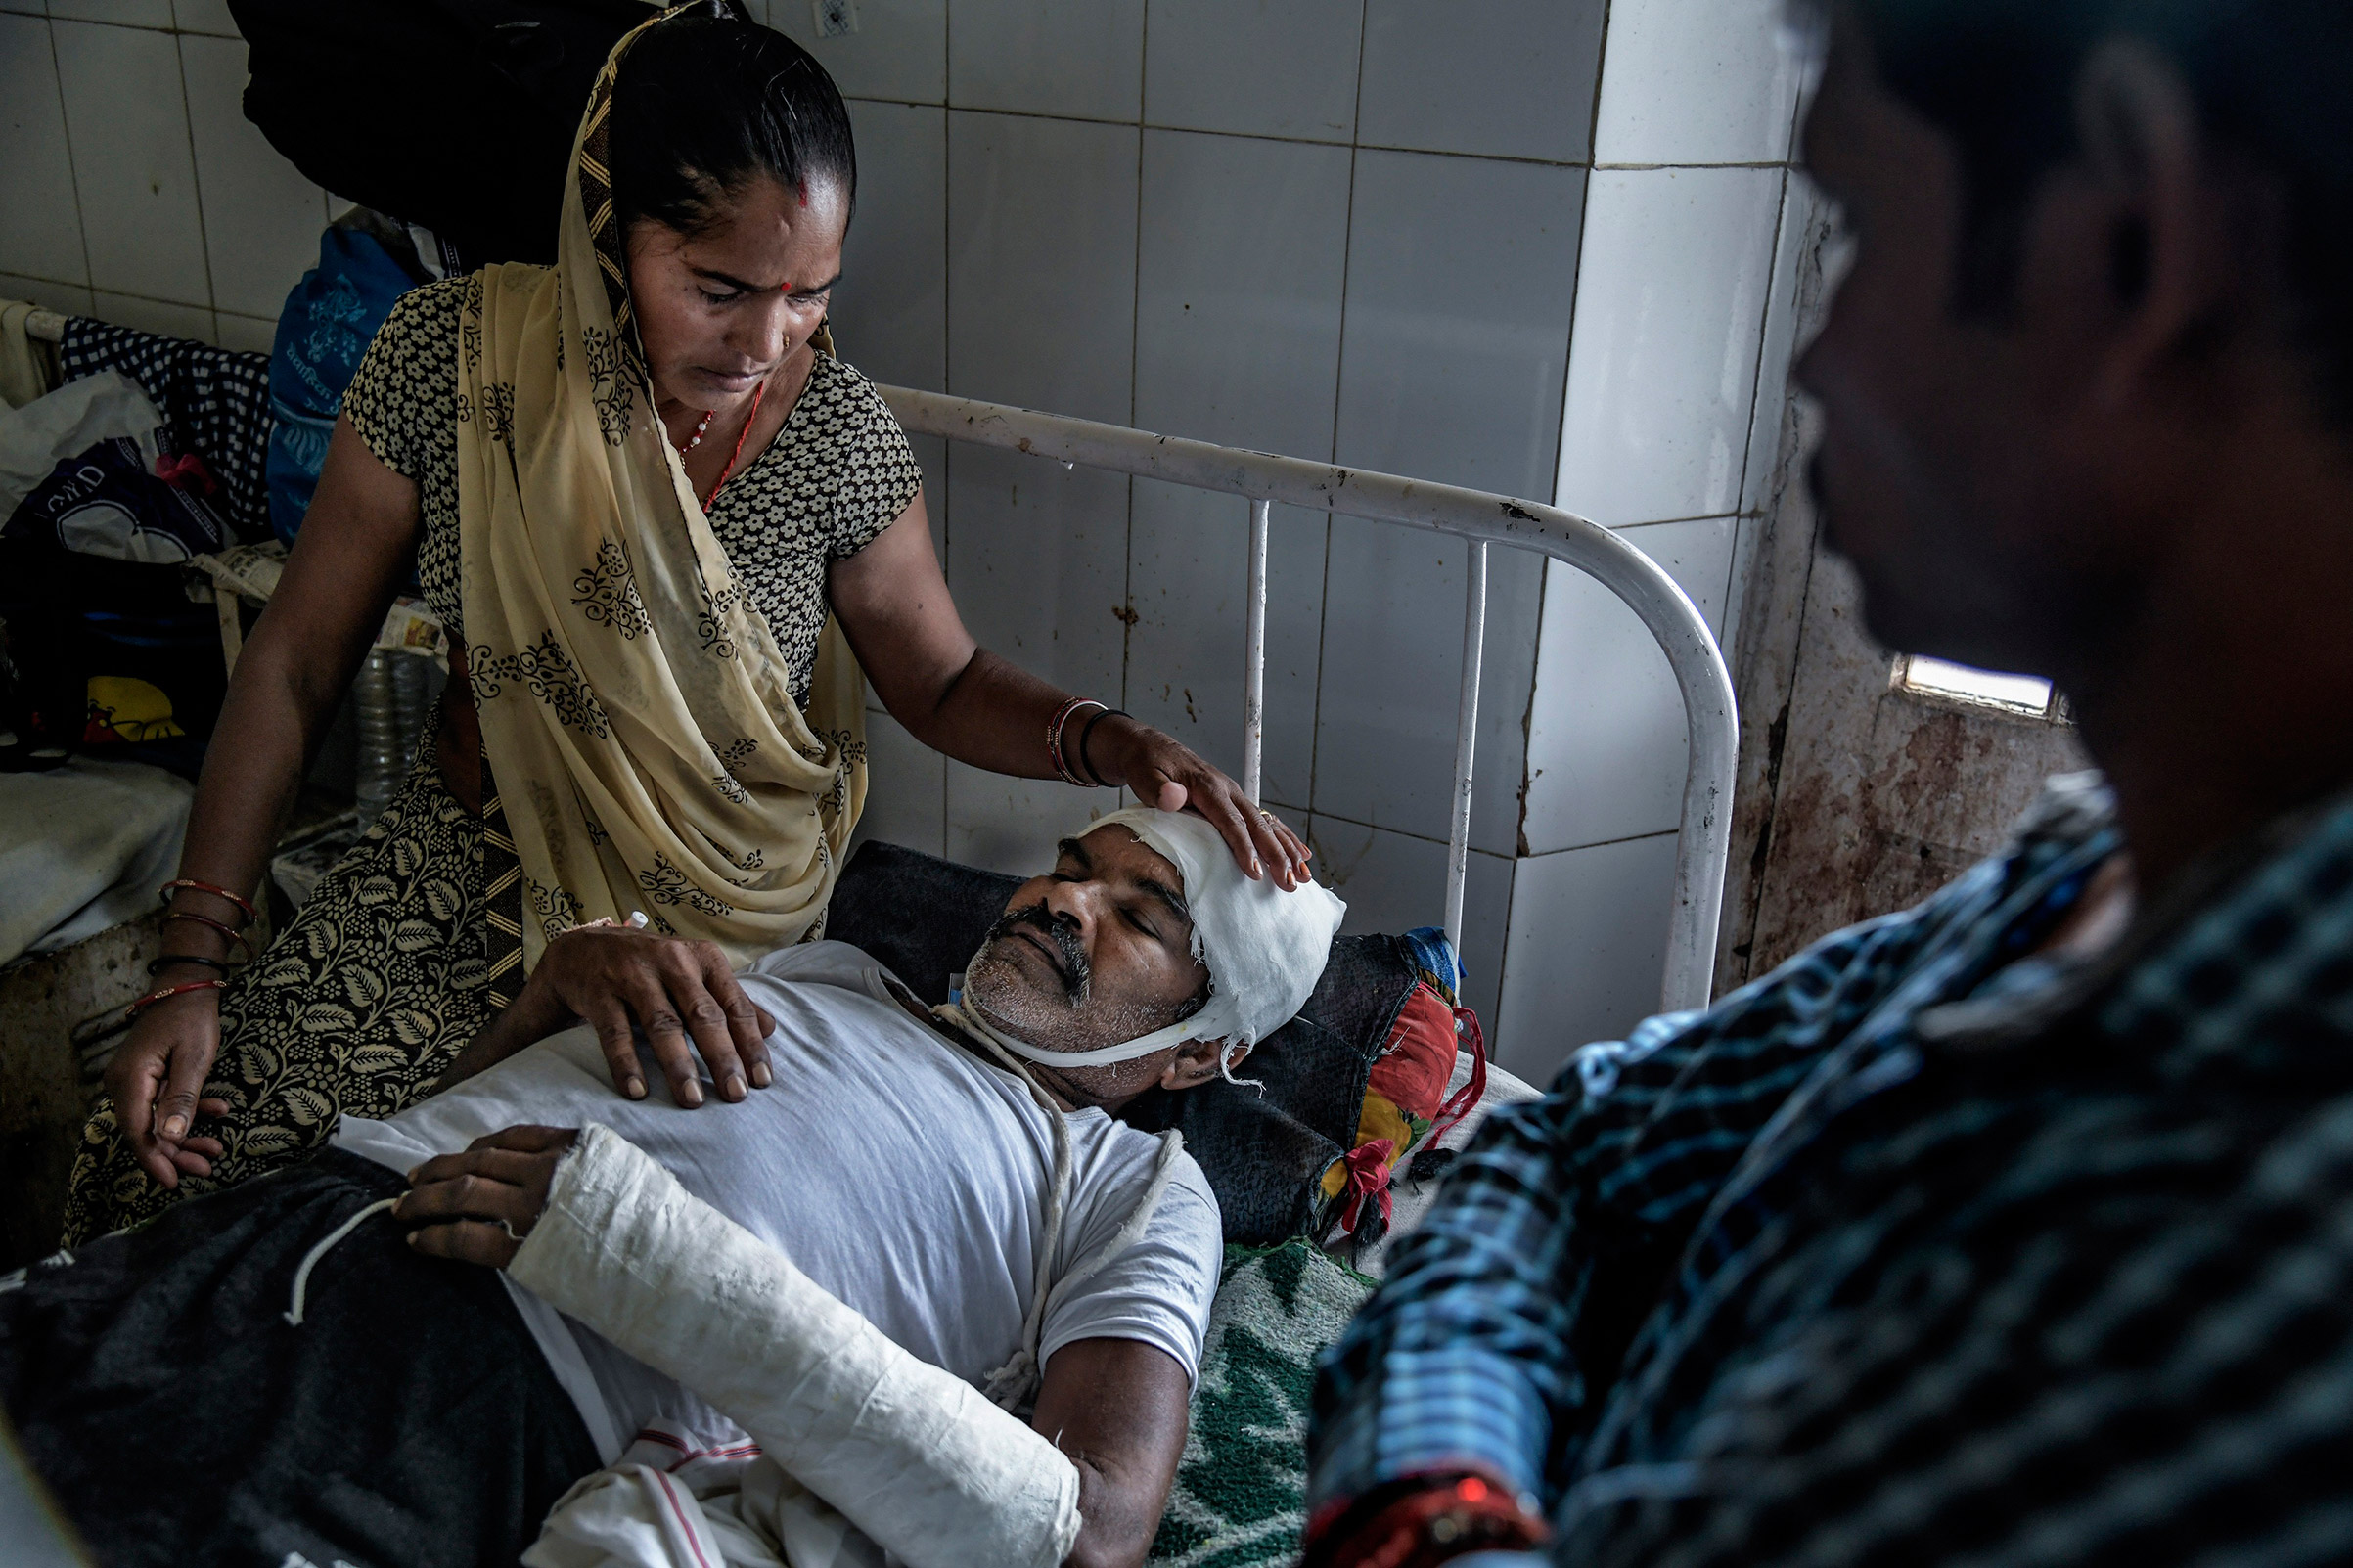 Sardar Singh Jatav recovers after an attack by higher-caste Hindu men in September 2018